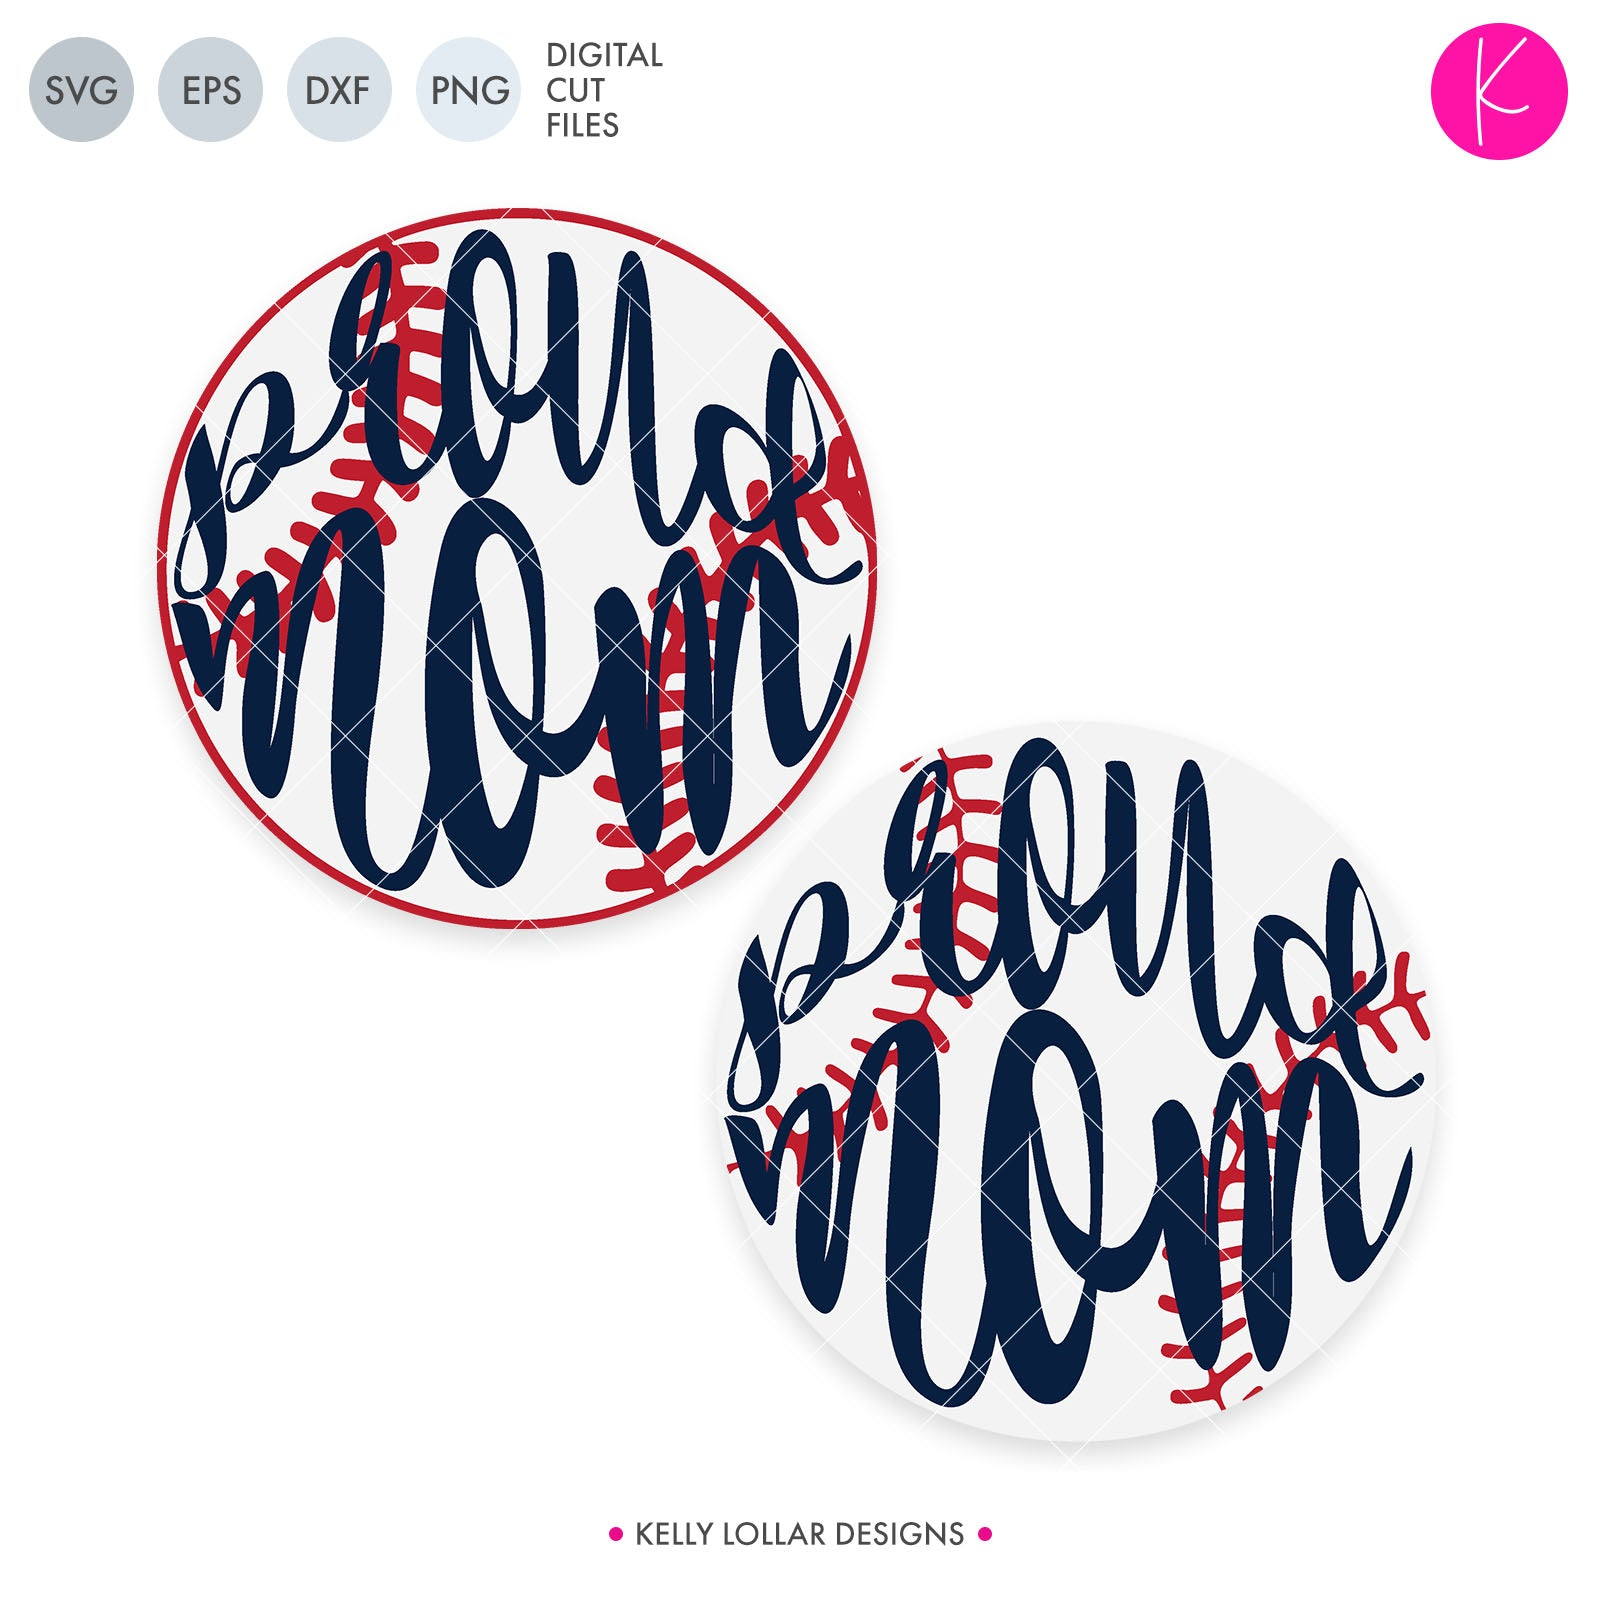 Proud Family Baseball / Softball | SVG DXF EPS PNG Cut Files Baseball or Softball with Proud Family Member's Name in Script for the Women and Print for the Men | SVG DXF PNG Cut Files Choose from individual files or the